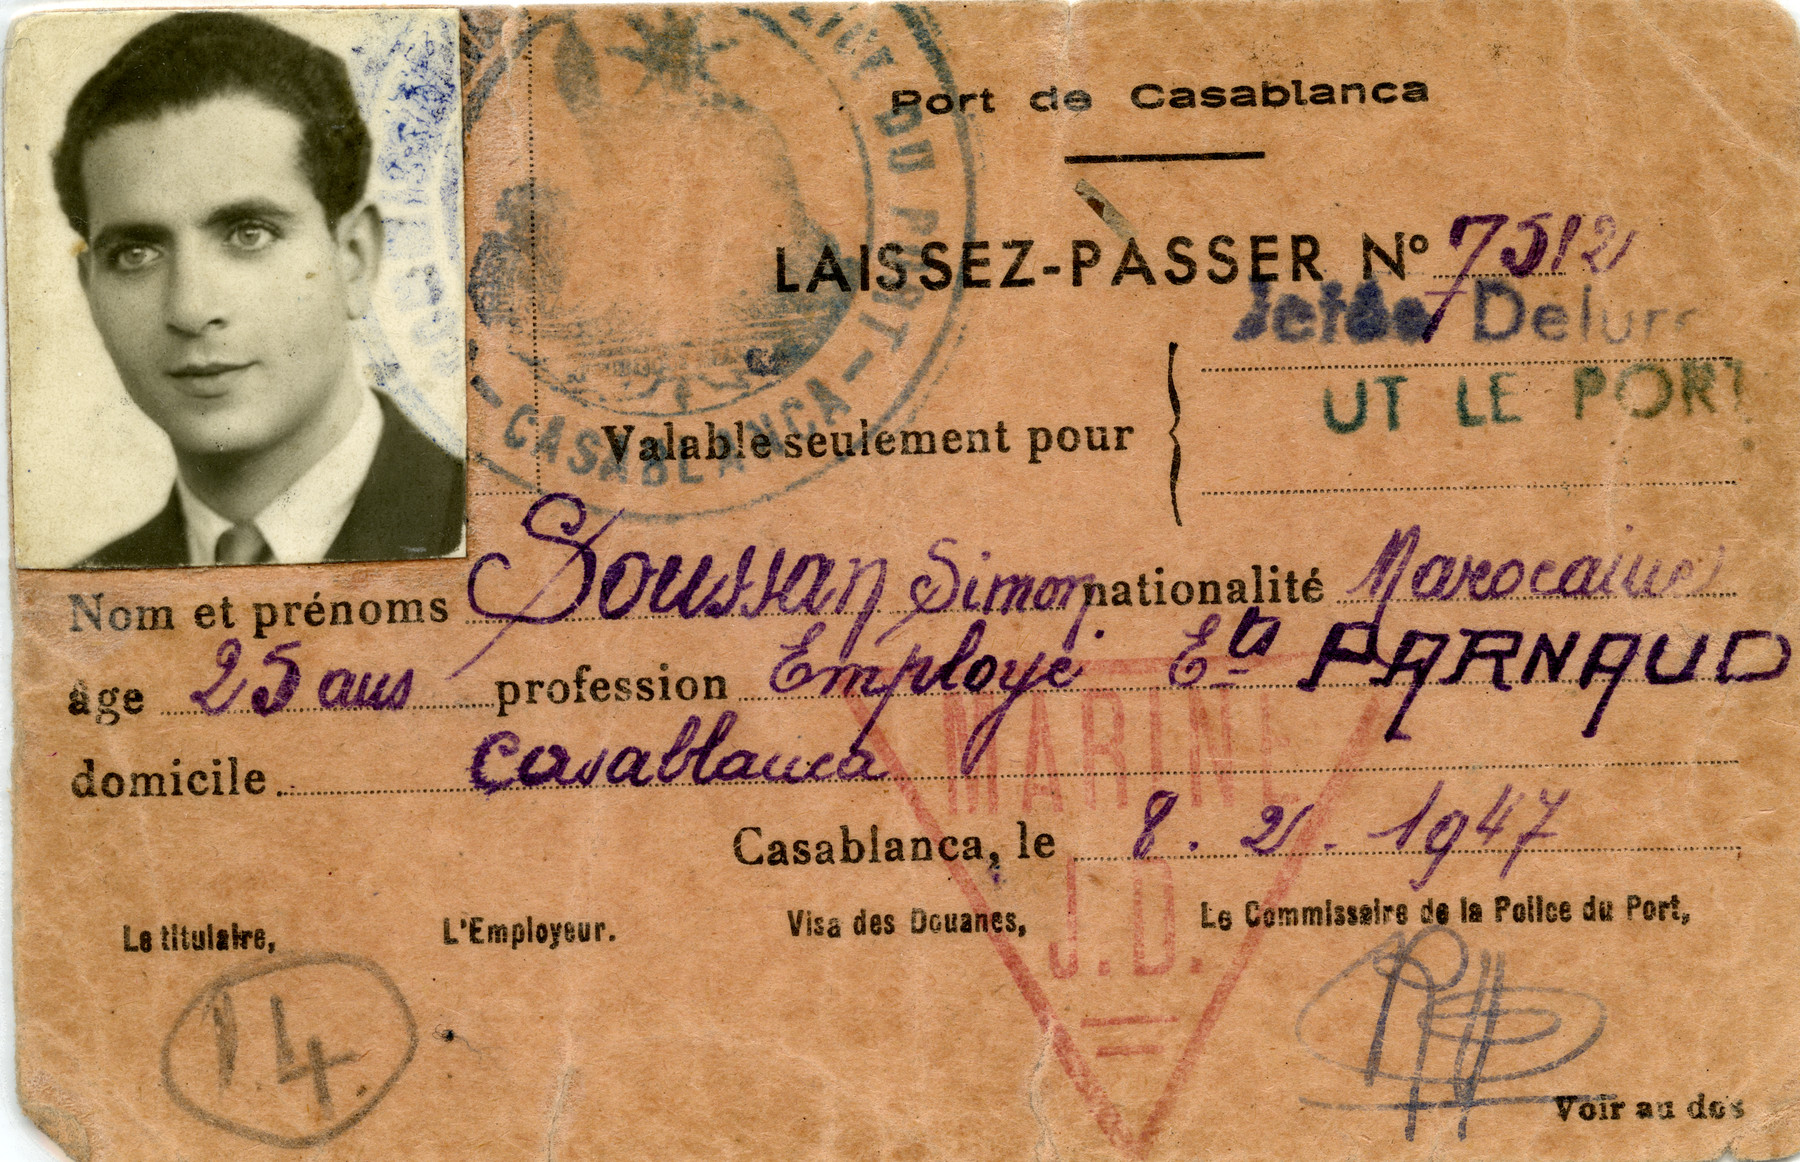 Identification paper of Simon Soussan [sic].